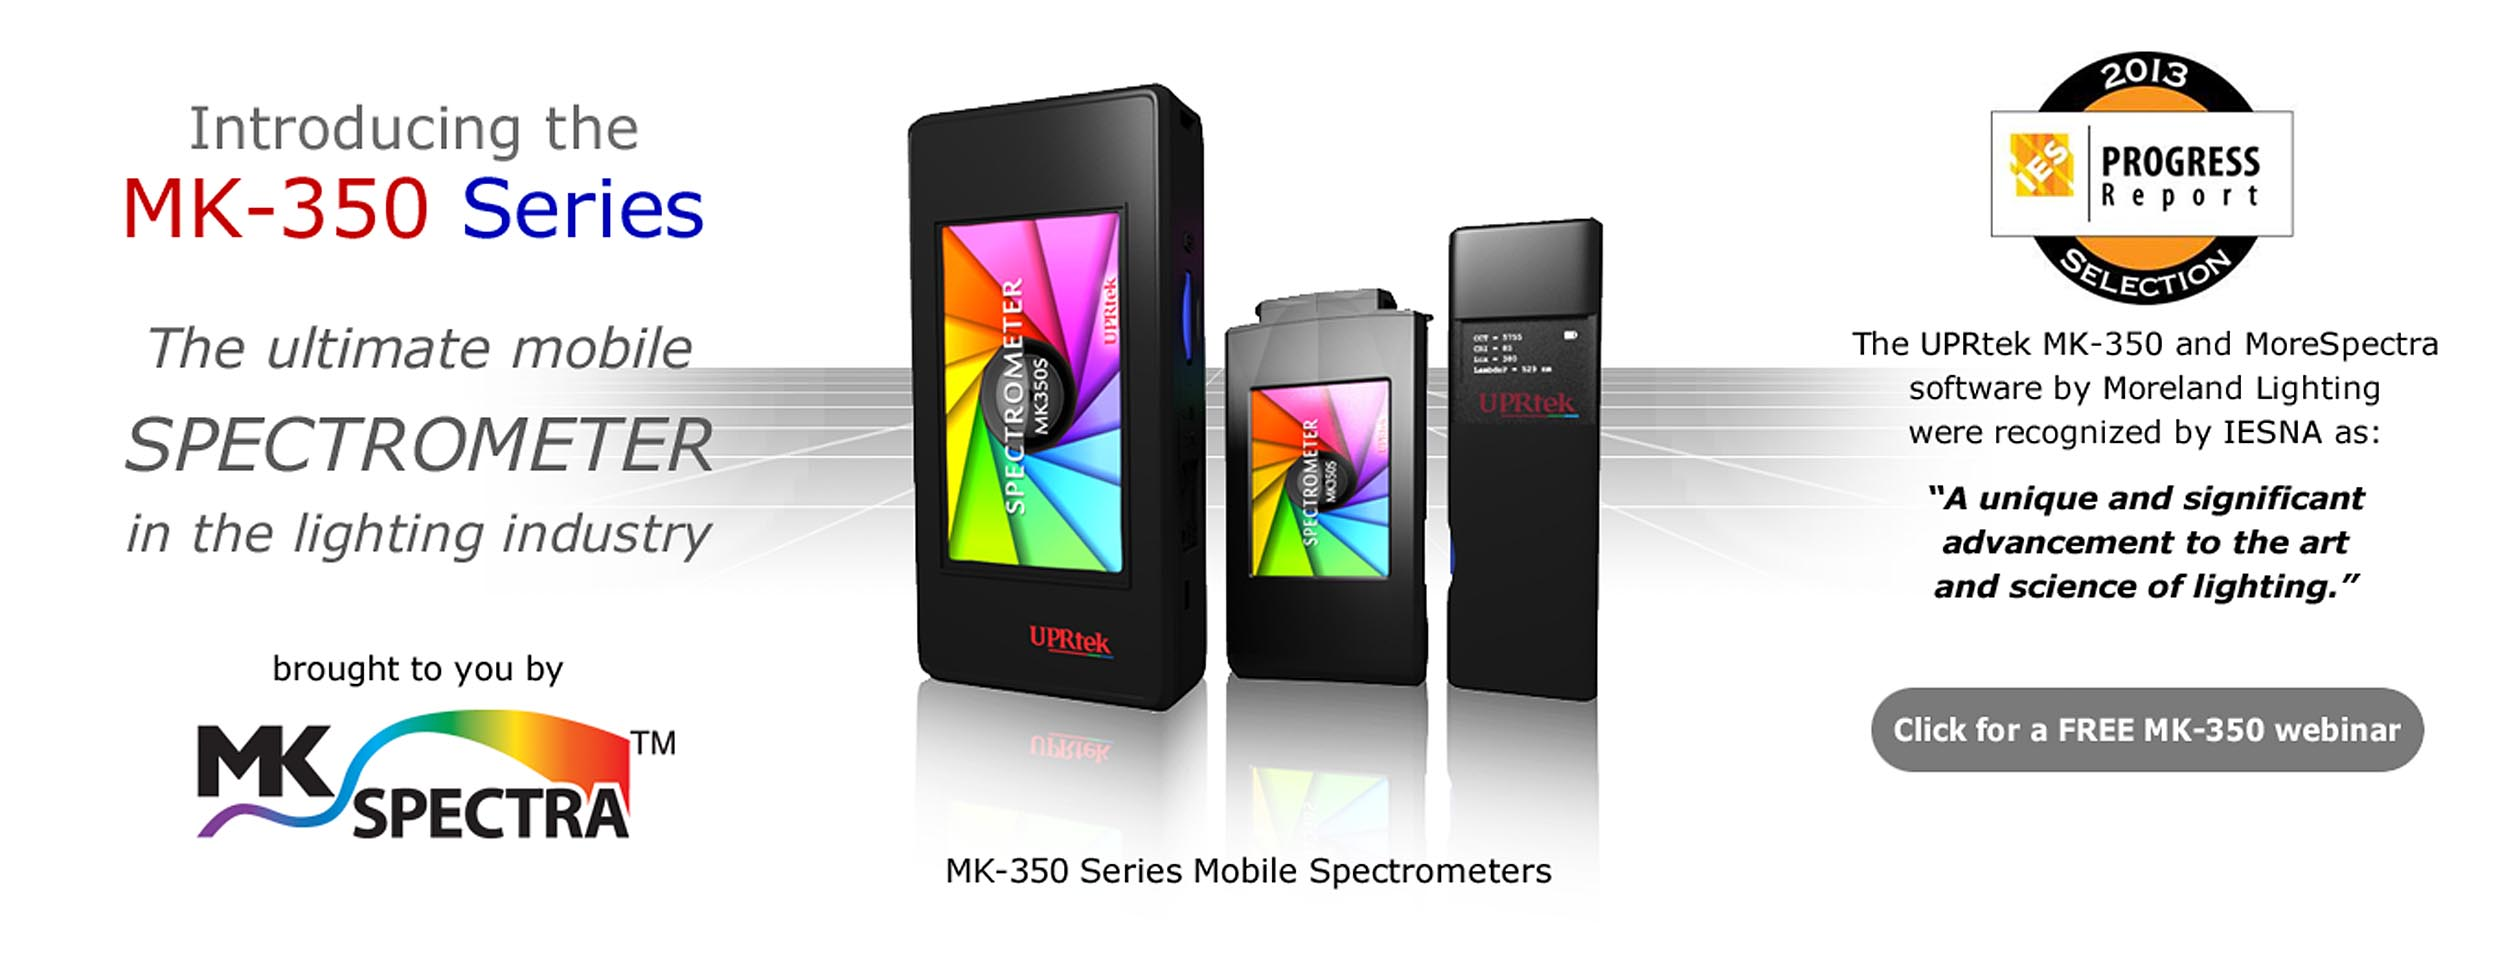 MK Spectra: Introducing the ultimate mobile spectrometer